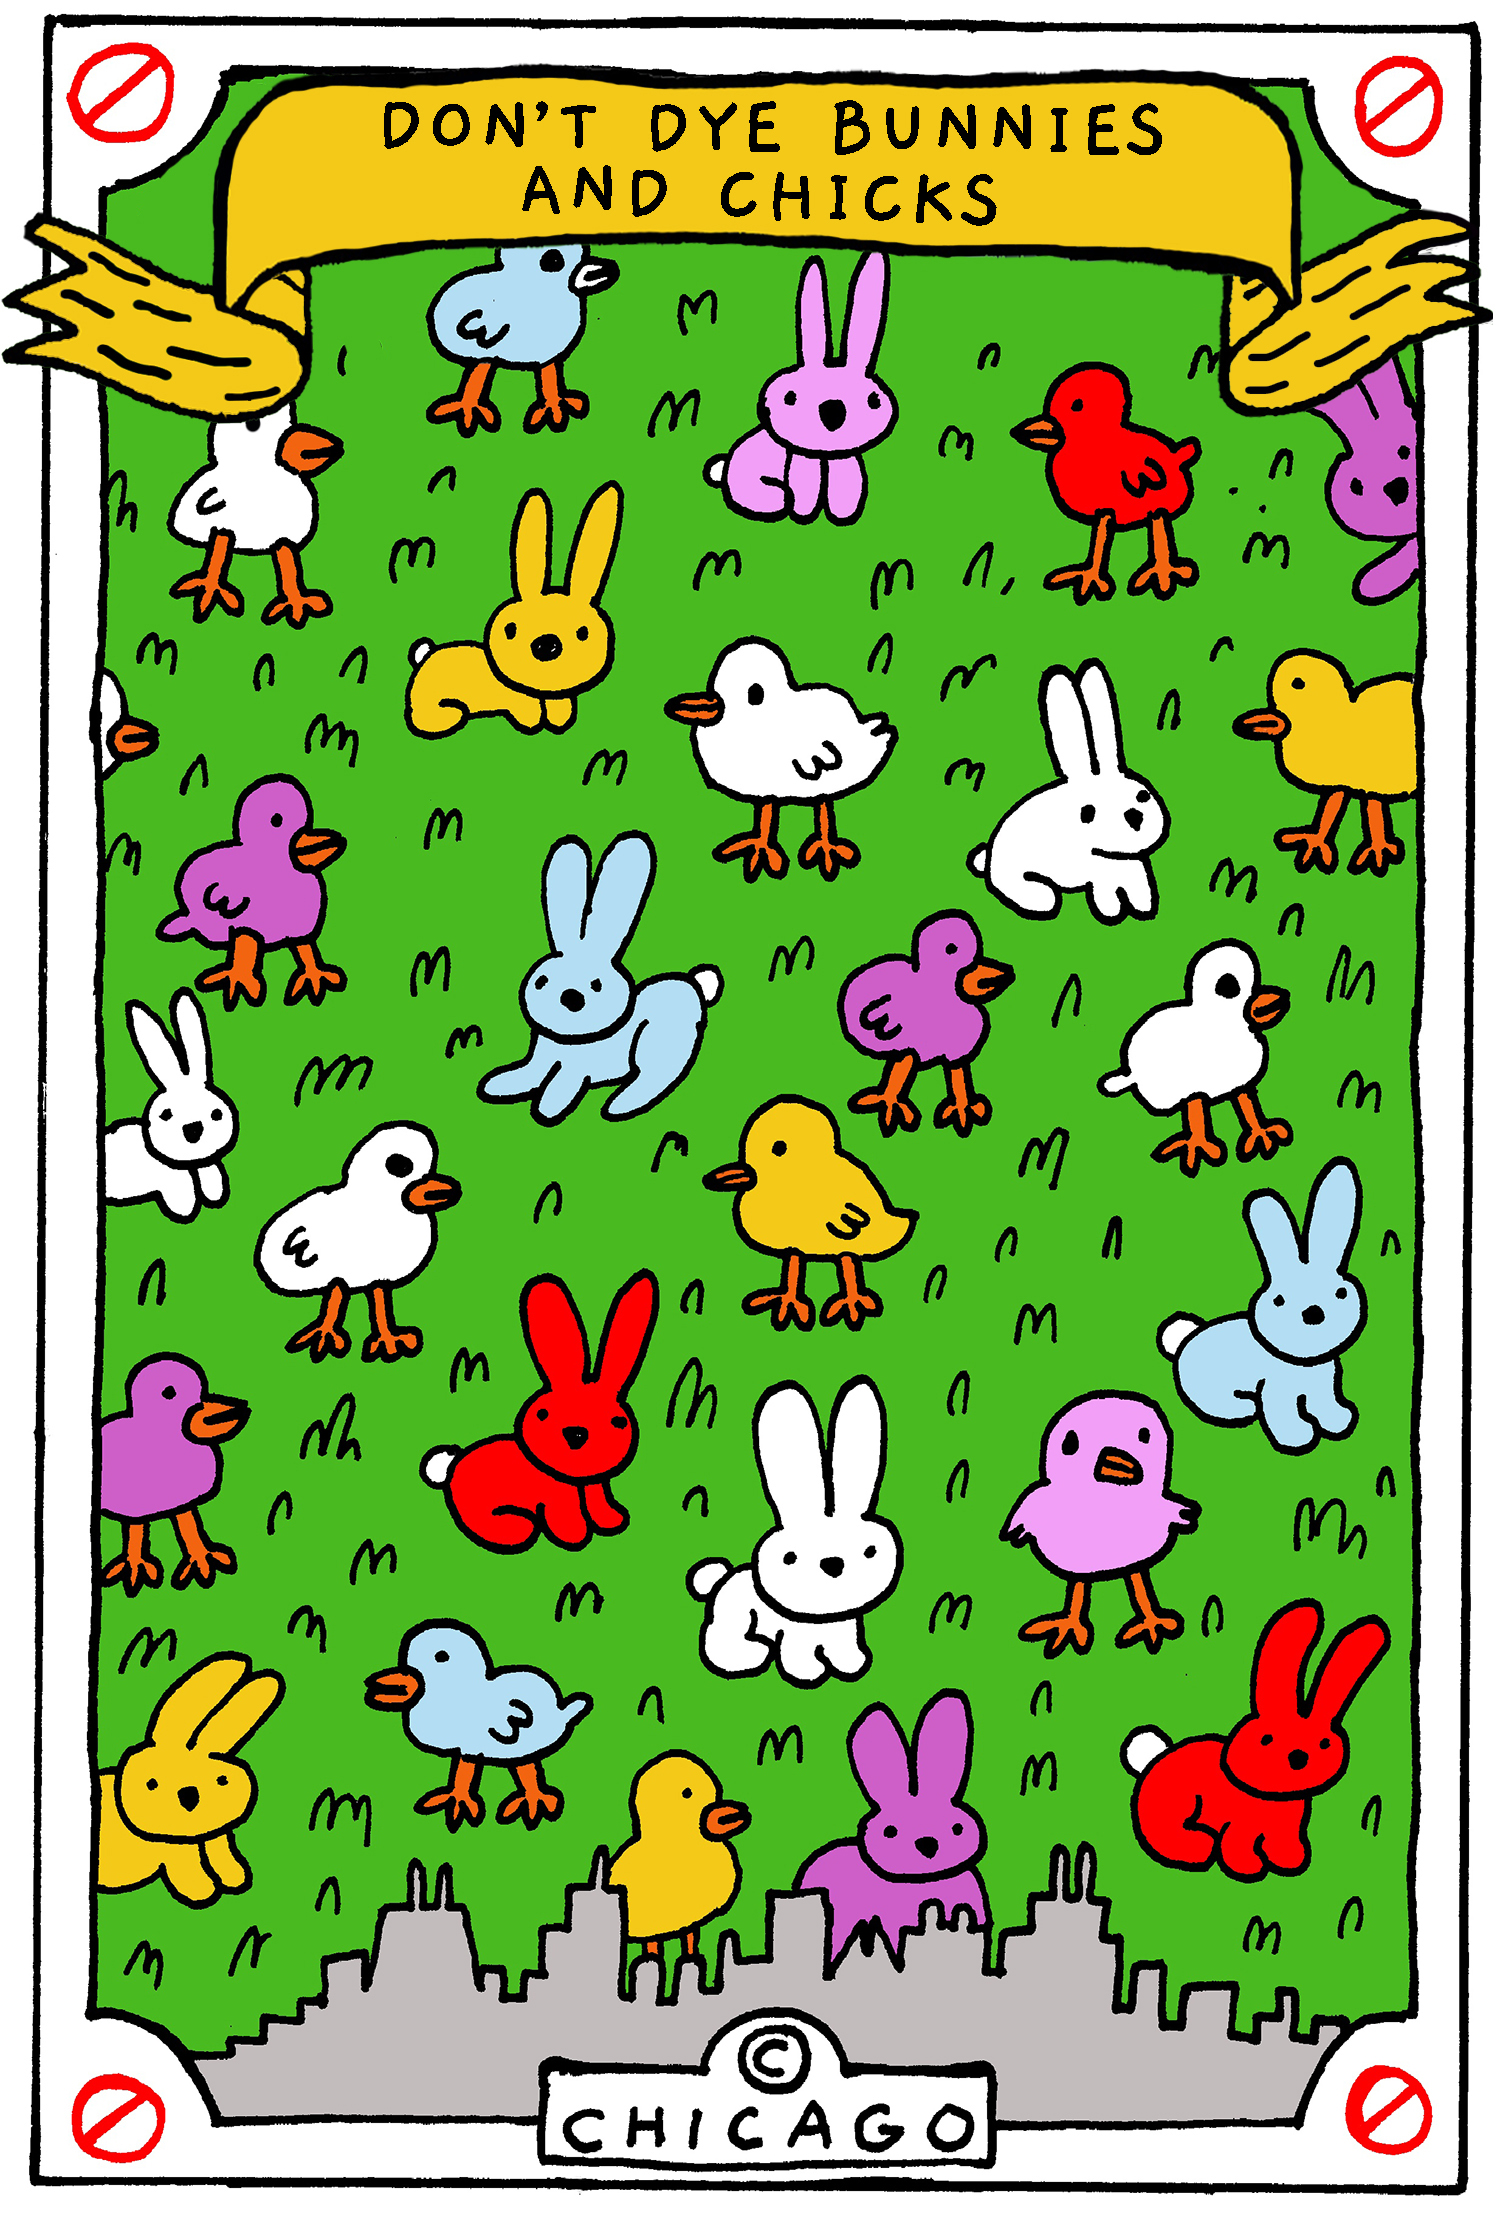 This is a drawing of multi-colored bunnies and chicks.